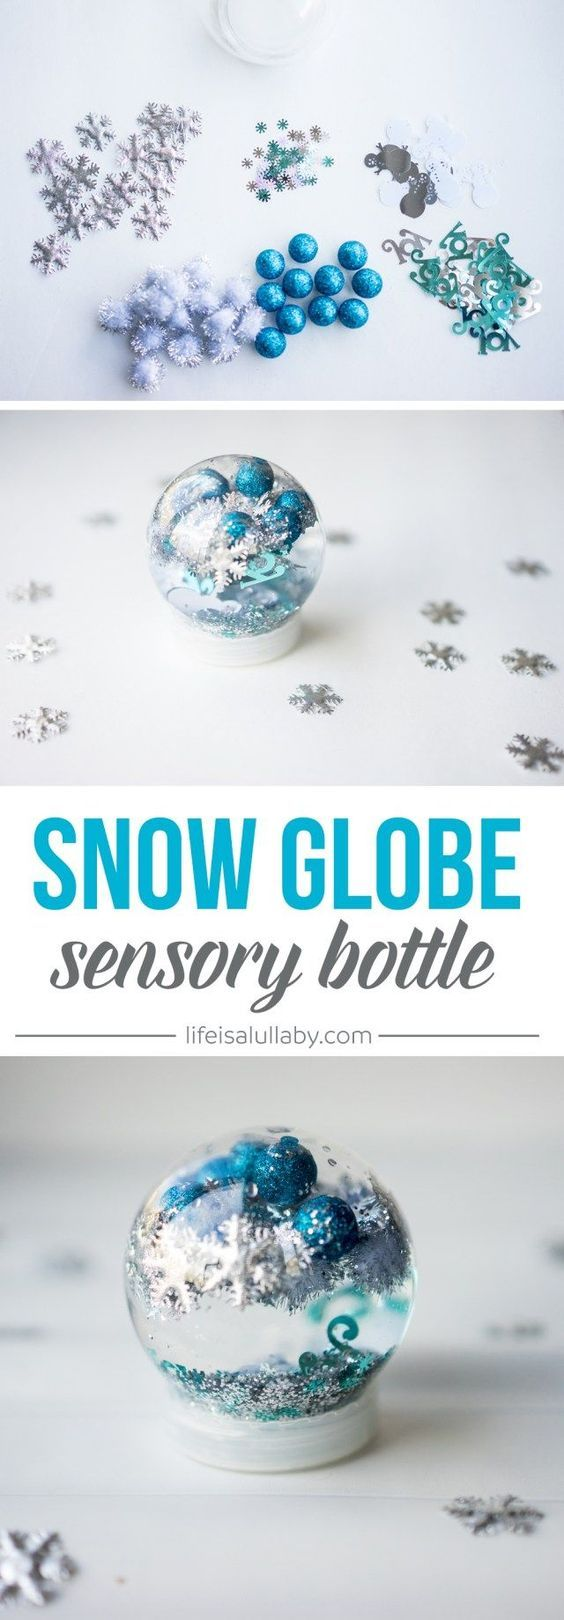 Ooh What a WONDERFUL way to use snowflakes by making a snow globe!